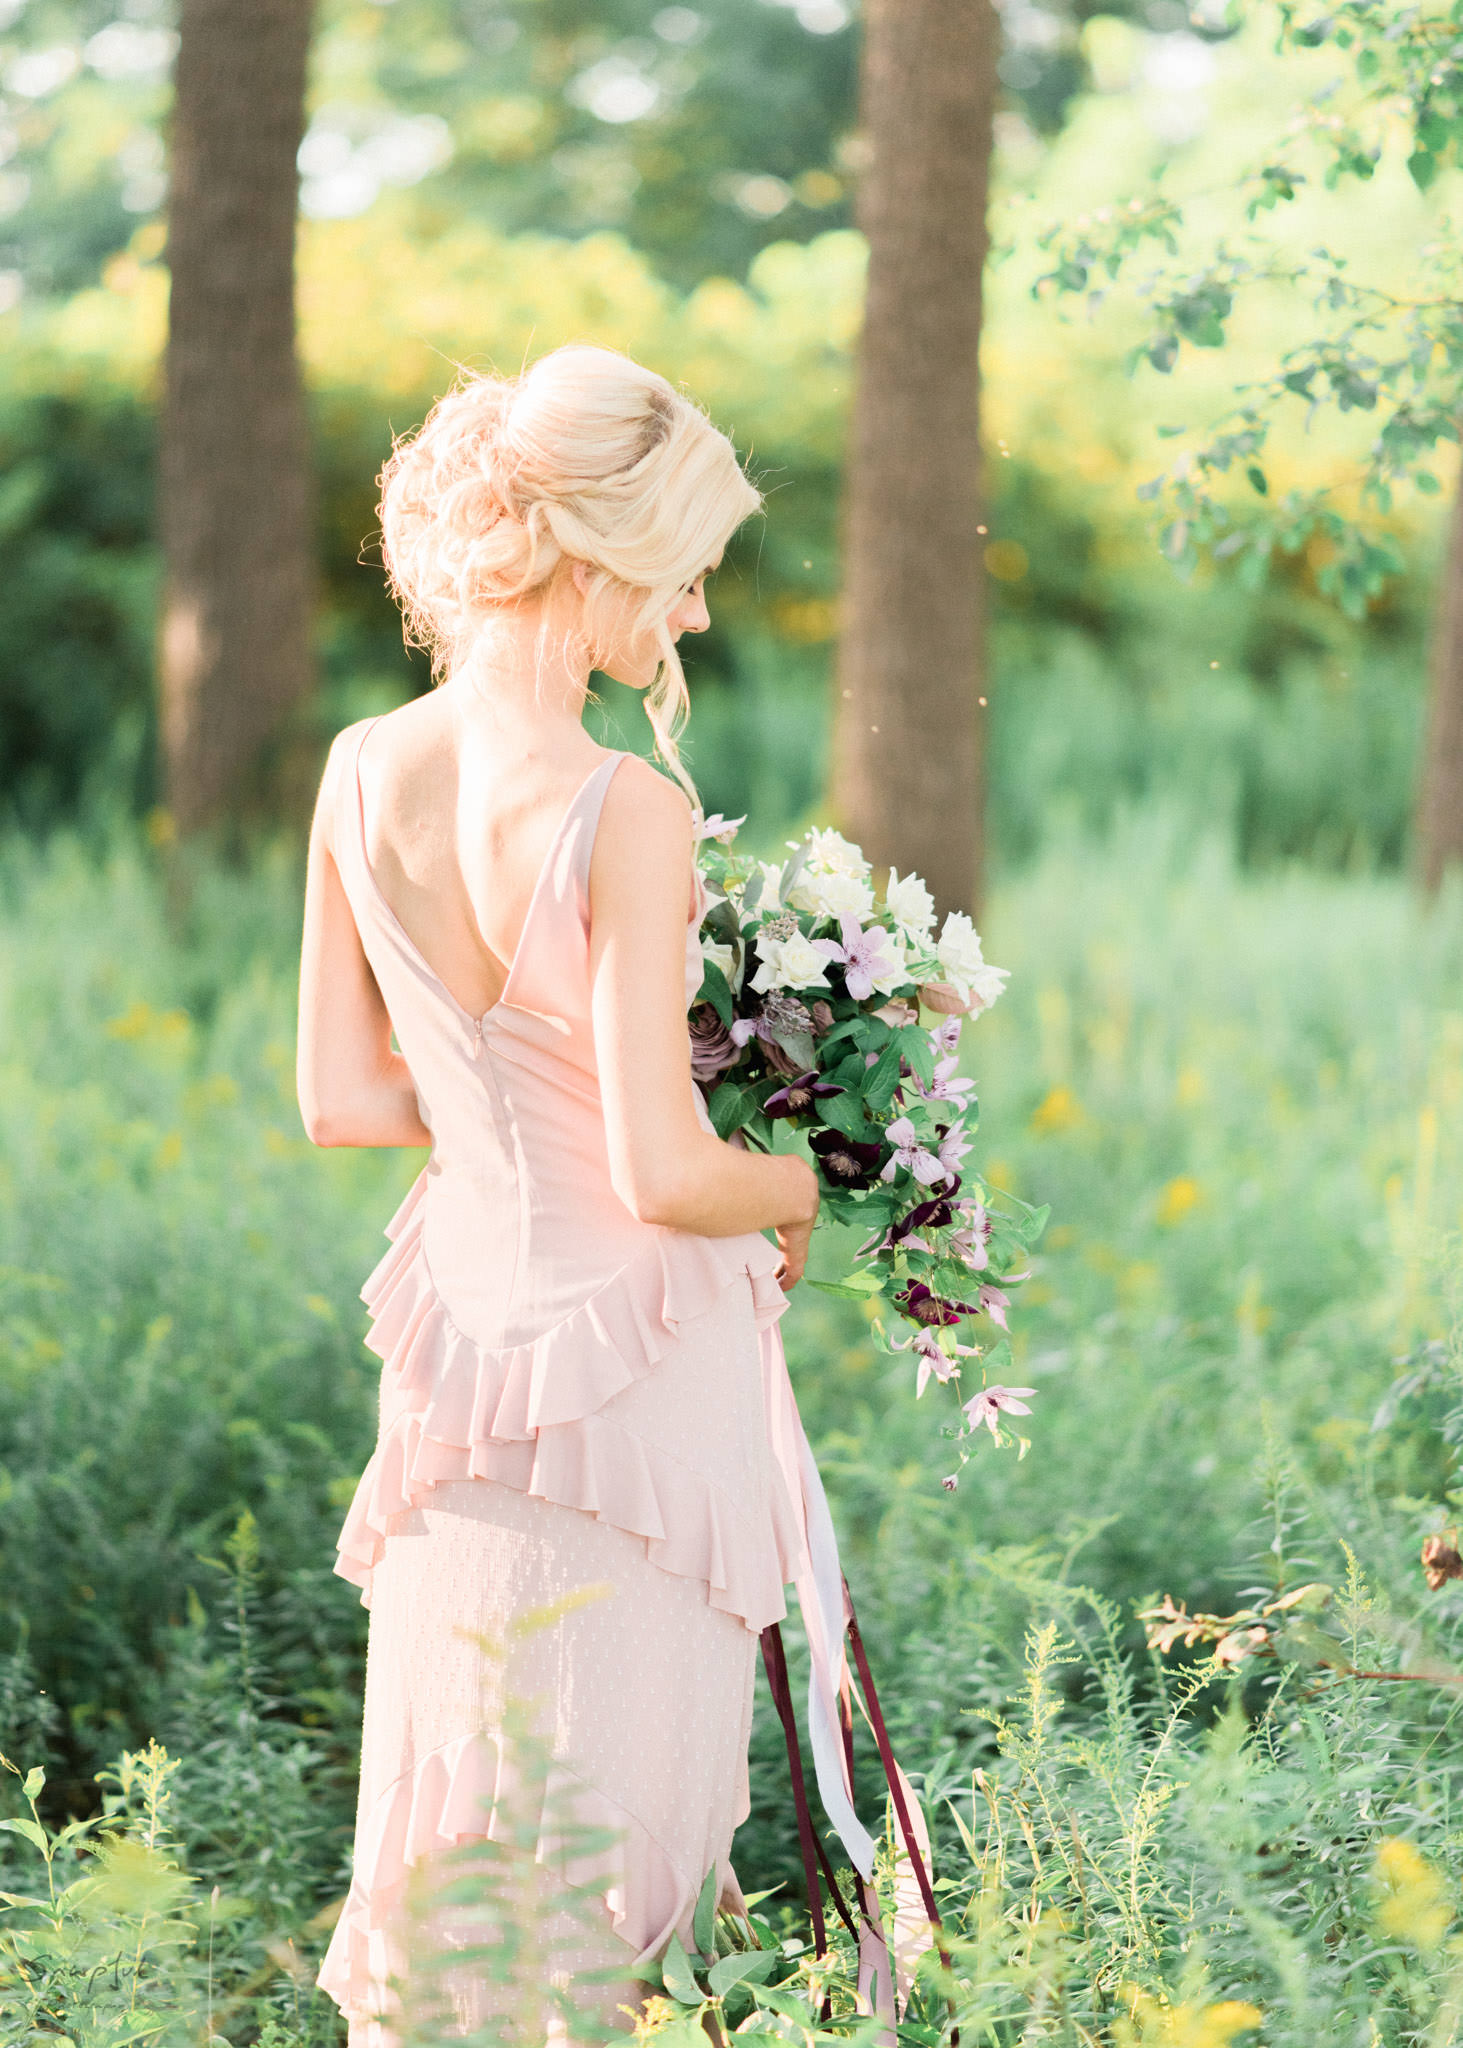 Back shot of bride with bouquet